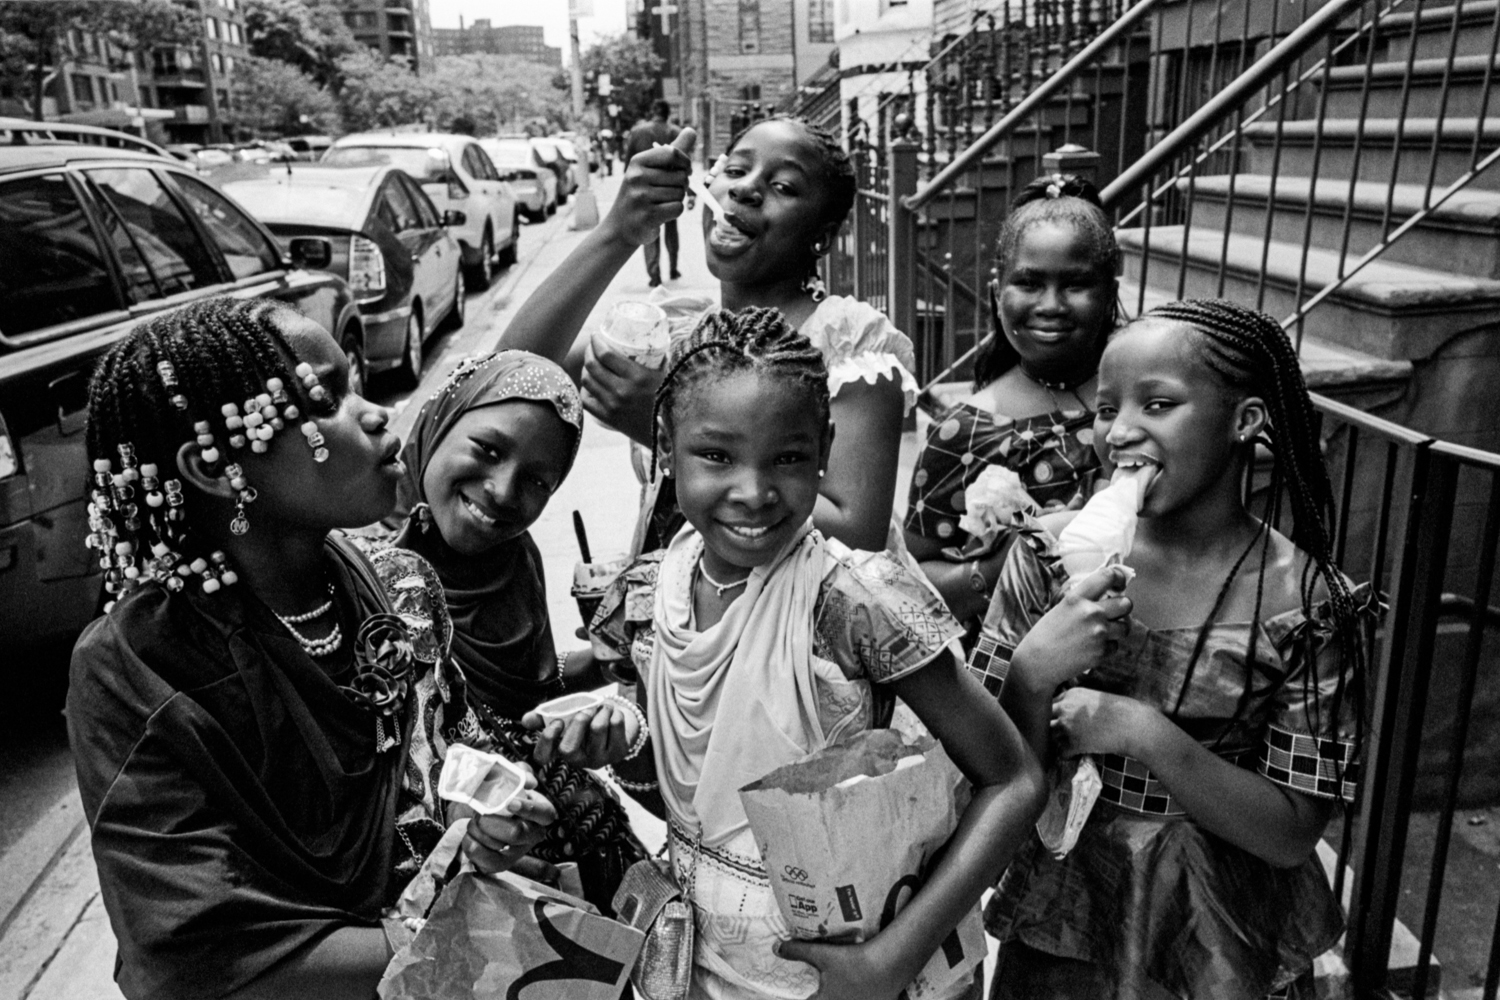 Sunday Best inHarlem & Brooklyn - Andre spent a couple of Sundays roaming the streets in Brooklyn and Harlem searching for finely dresses churchgoers.August 19, 2017